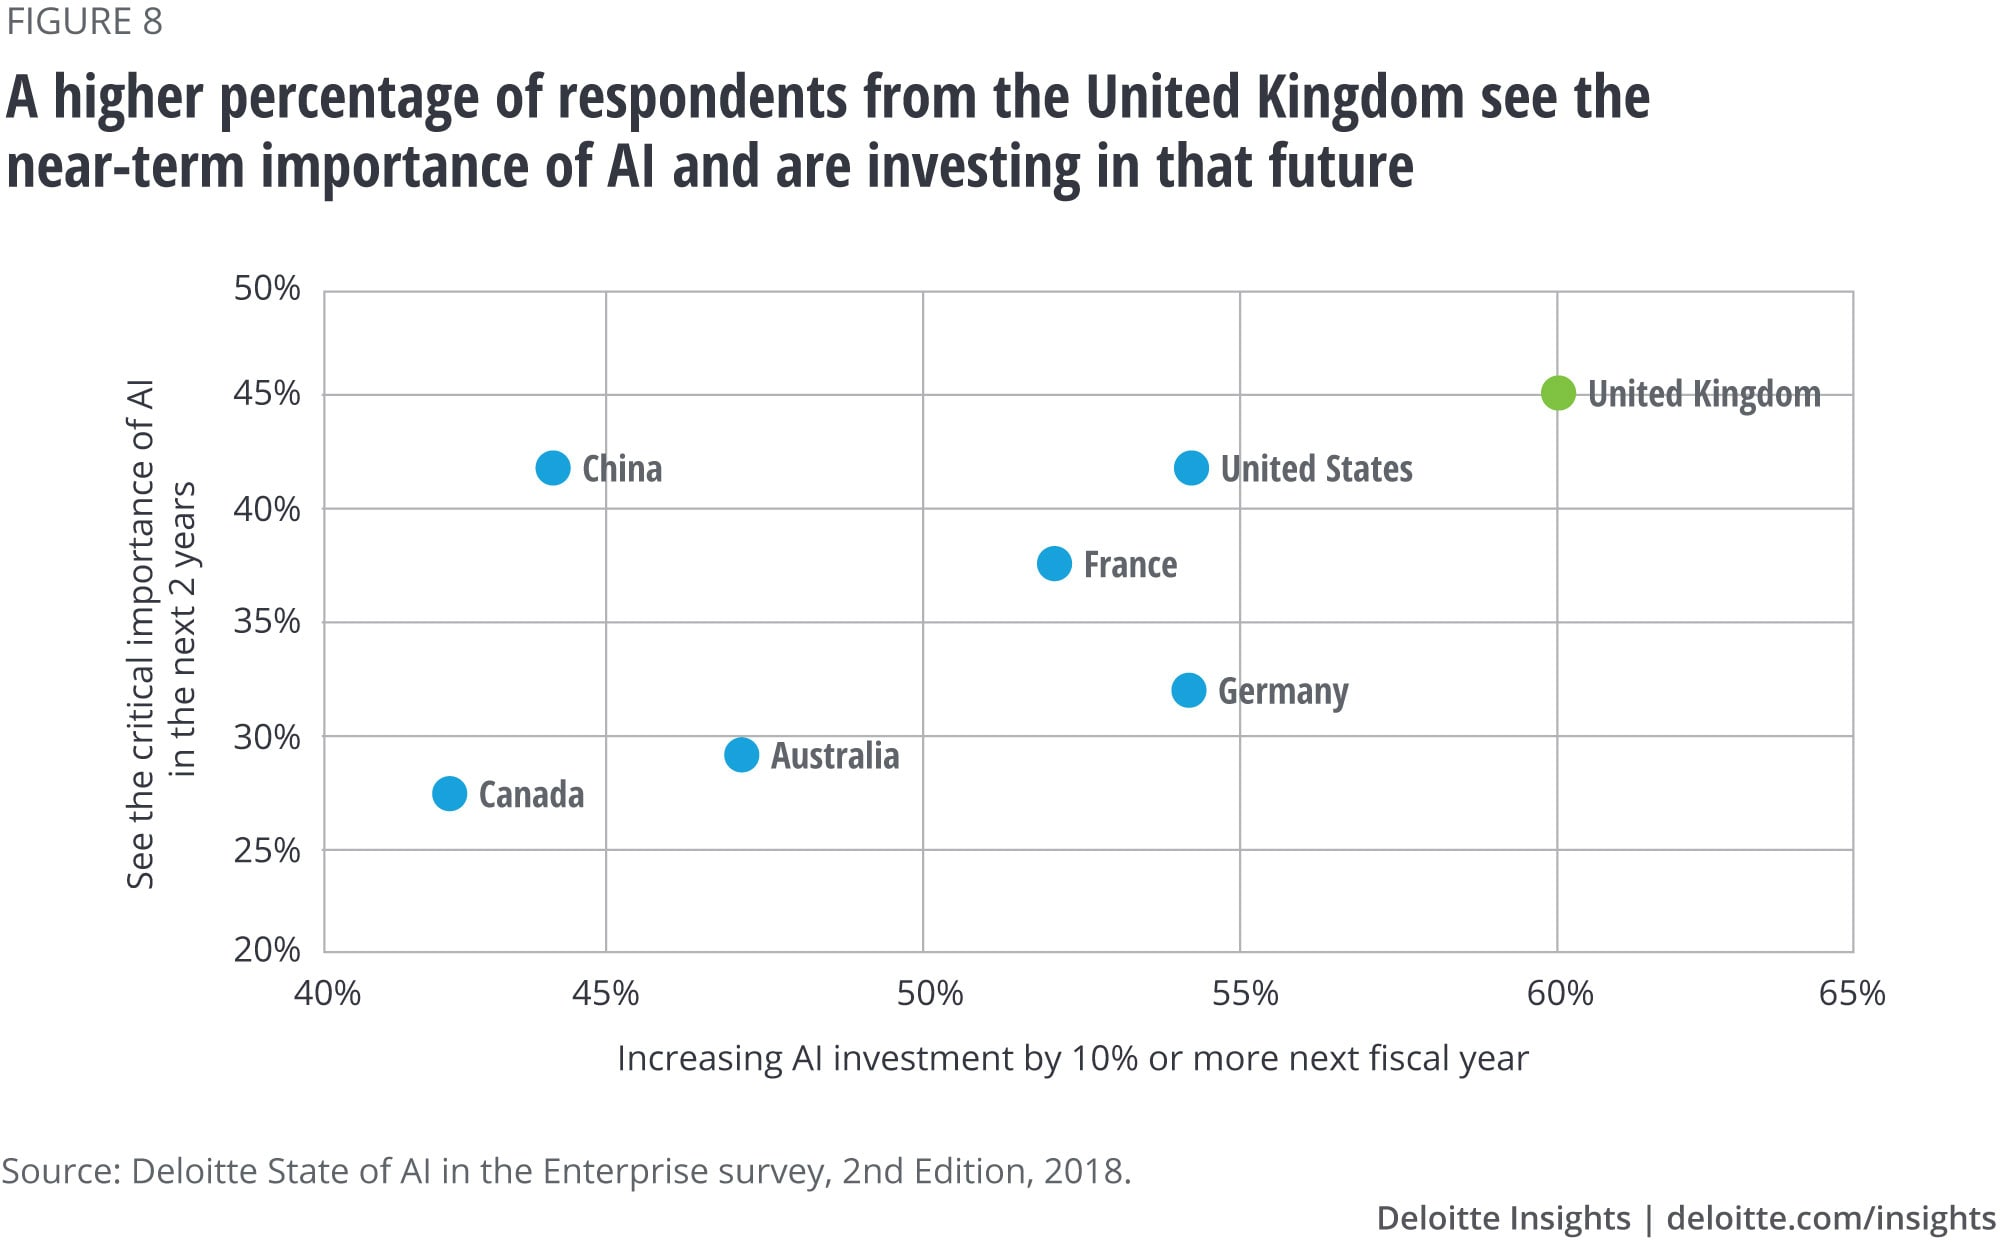 A higher percentage of respondents from the United Kingdom see the near-term importance of AI and are investing in that future